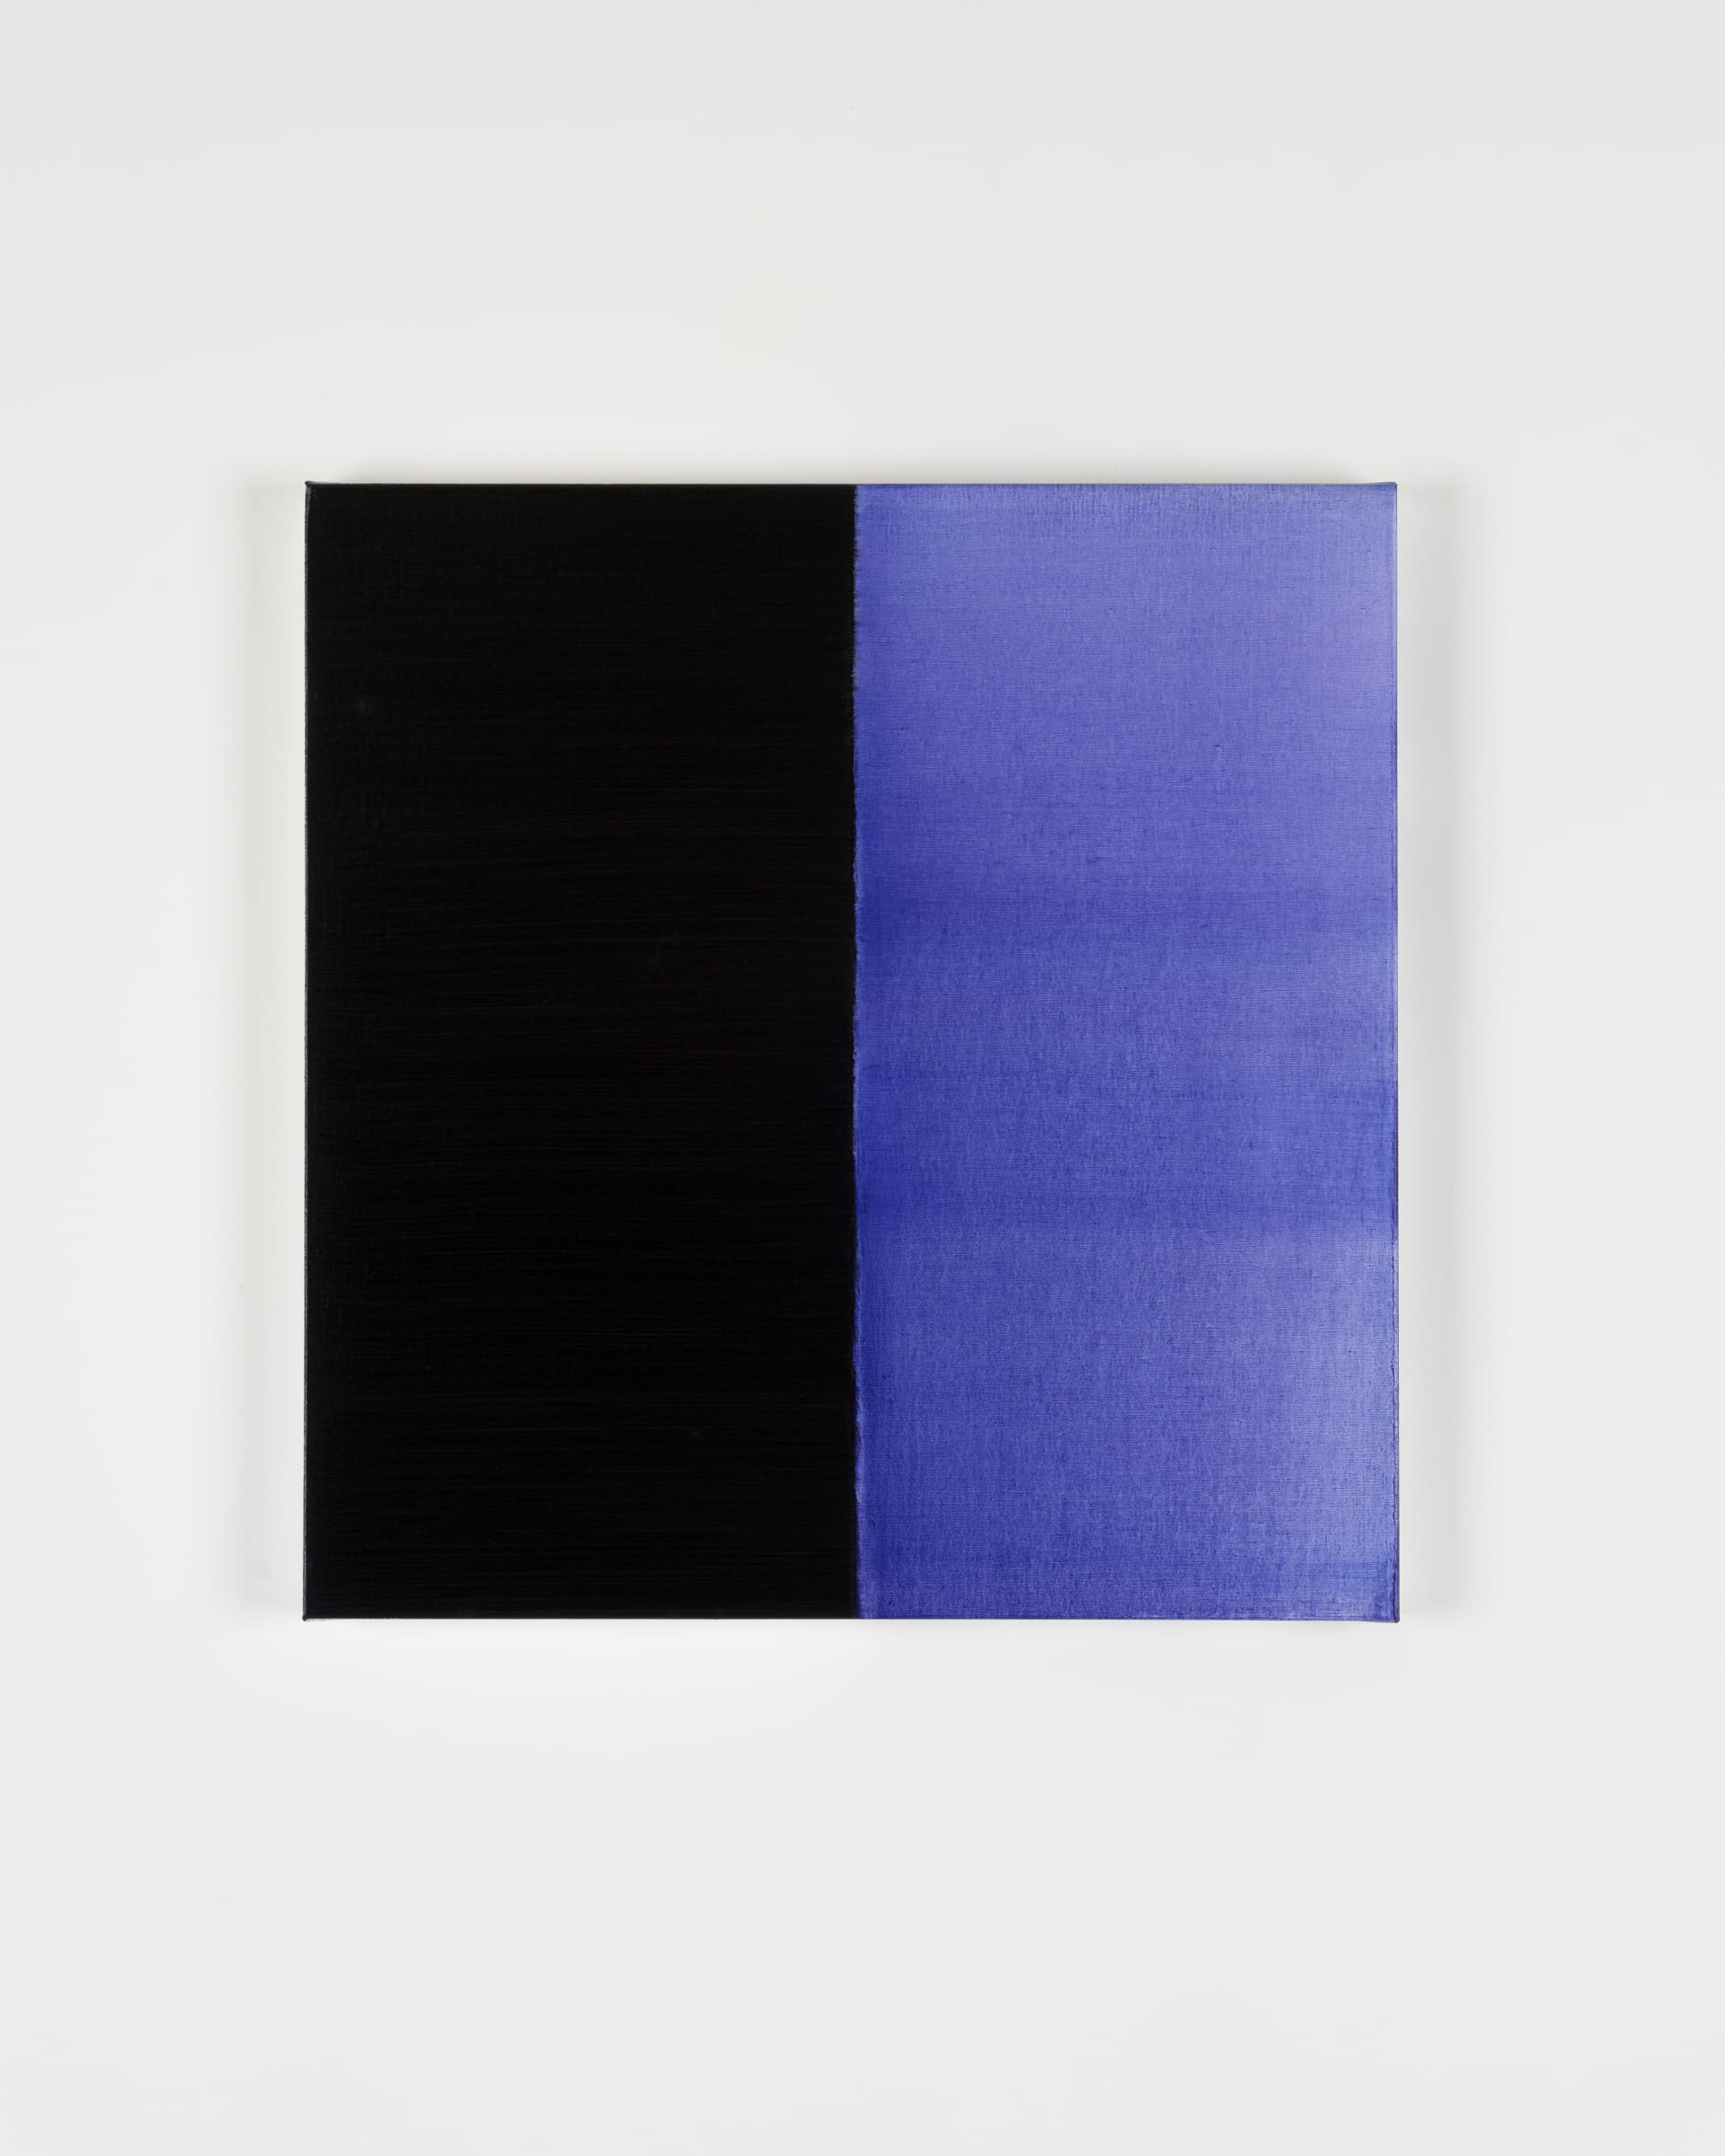 "<span class=""link fancybox-details-link""><a href=""/artists/33-callum-innes/works/16310/"">View Detail Page</a></span><div class=""artist""><strong>CALLUM INNES</strong></div> <div class=""title""><em>Untitled Lamp Black No 3</em>, 2019</div> <div class=""medium"">oil on linen</div> <div class=""dimensions"">60 x 58 cm<br /> 23 5/8 x 22 7/8 in</div><div class=""copyright_line"">Copyright The Artist</div>"